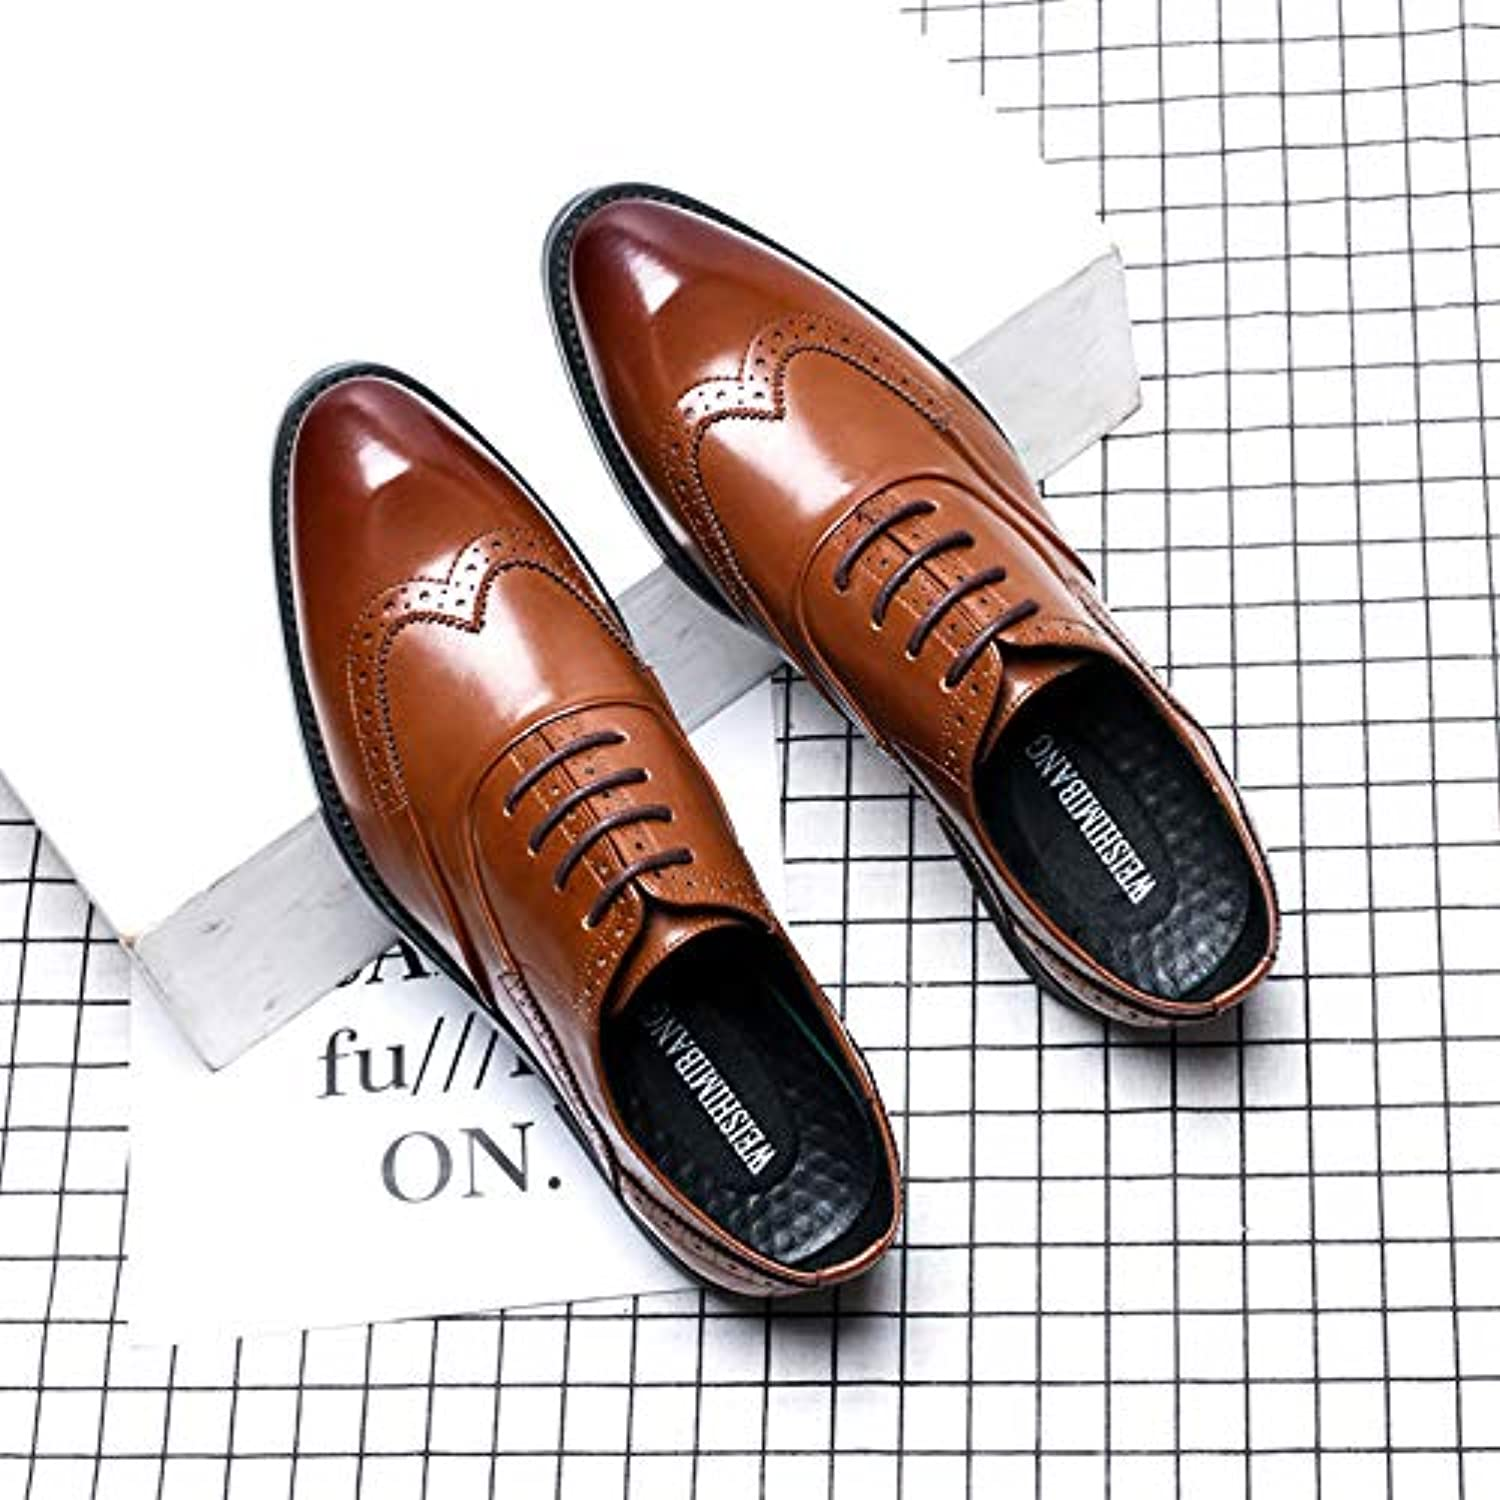 LOVDRAM Men'S shoes Autumn And Winter Fashion Brock Carved shoes Men'S Fashion Dress Business shoes Casual Pointed Fashion Men'S shoes